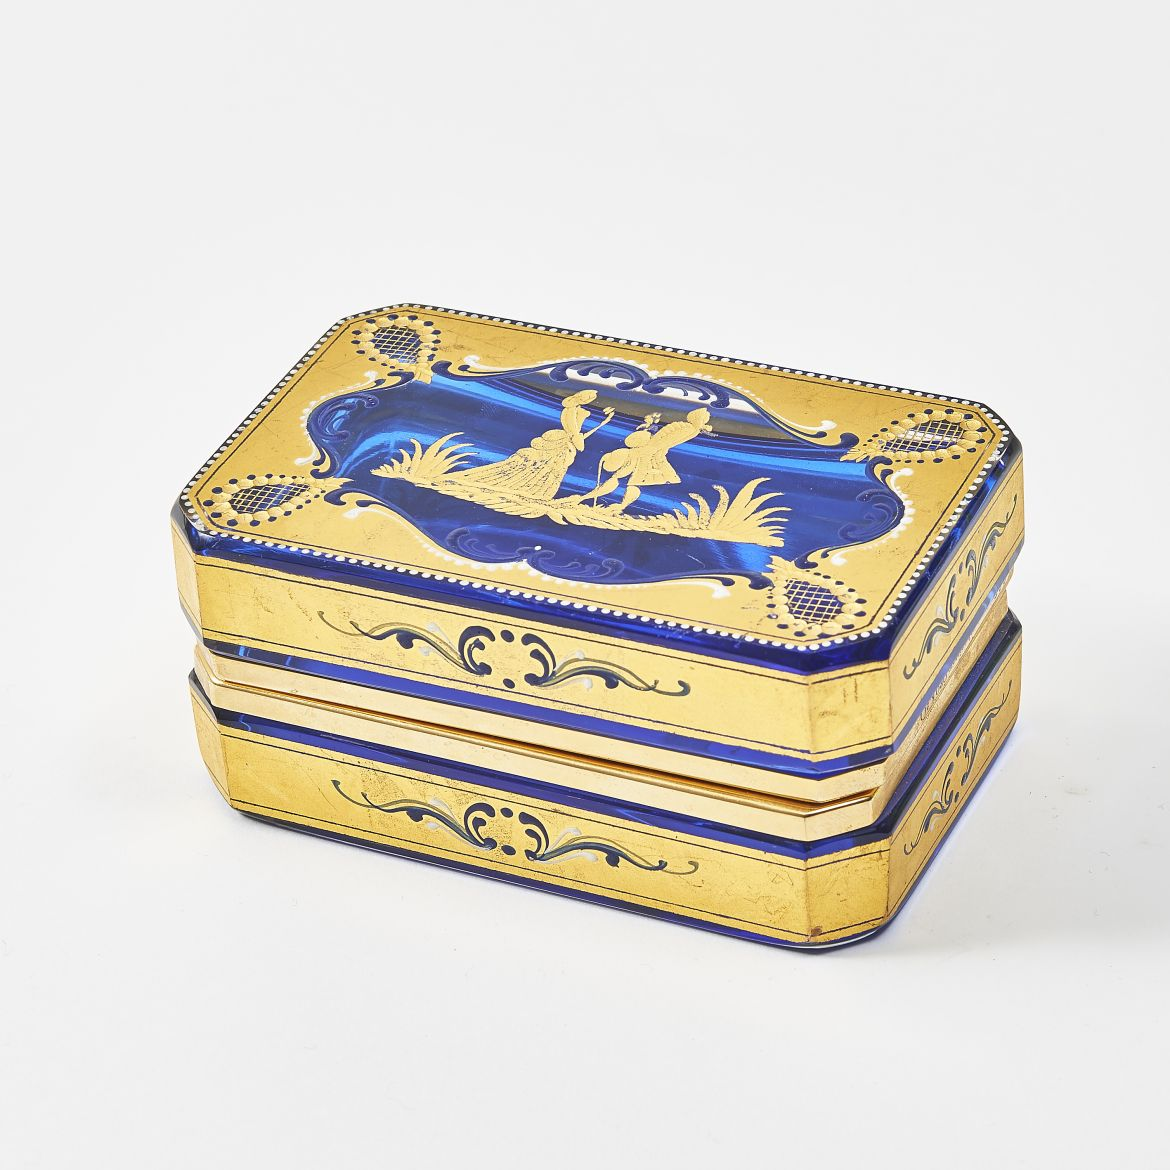 Blue Casket with Gold Overlay